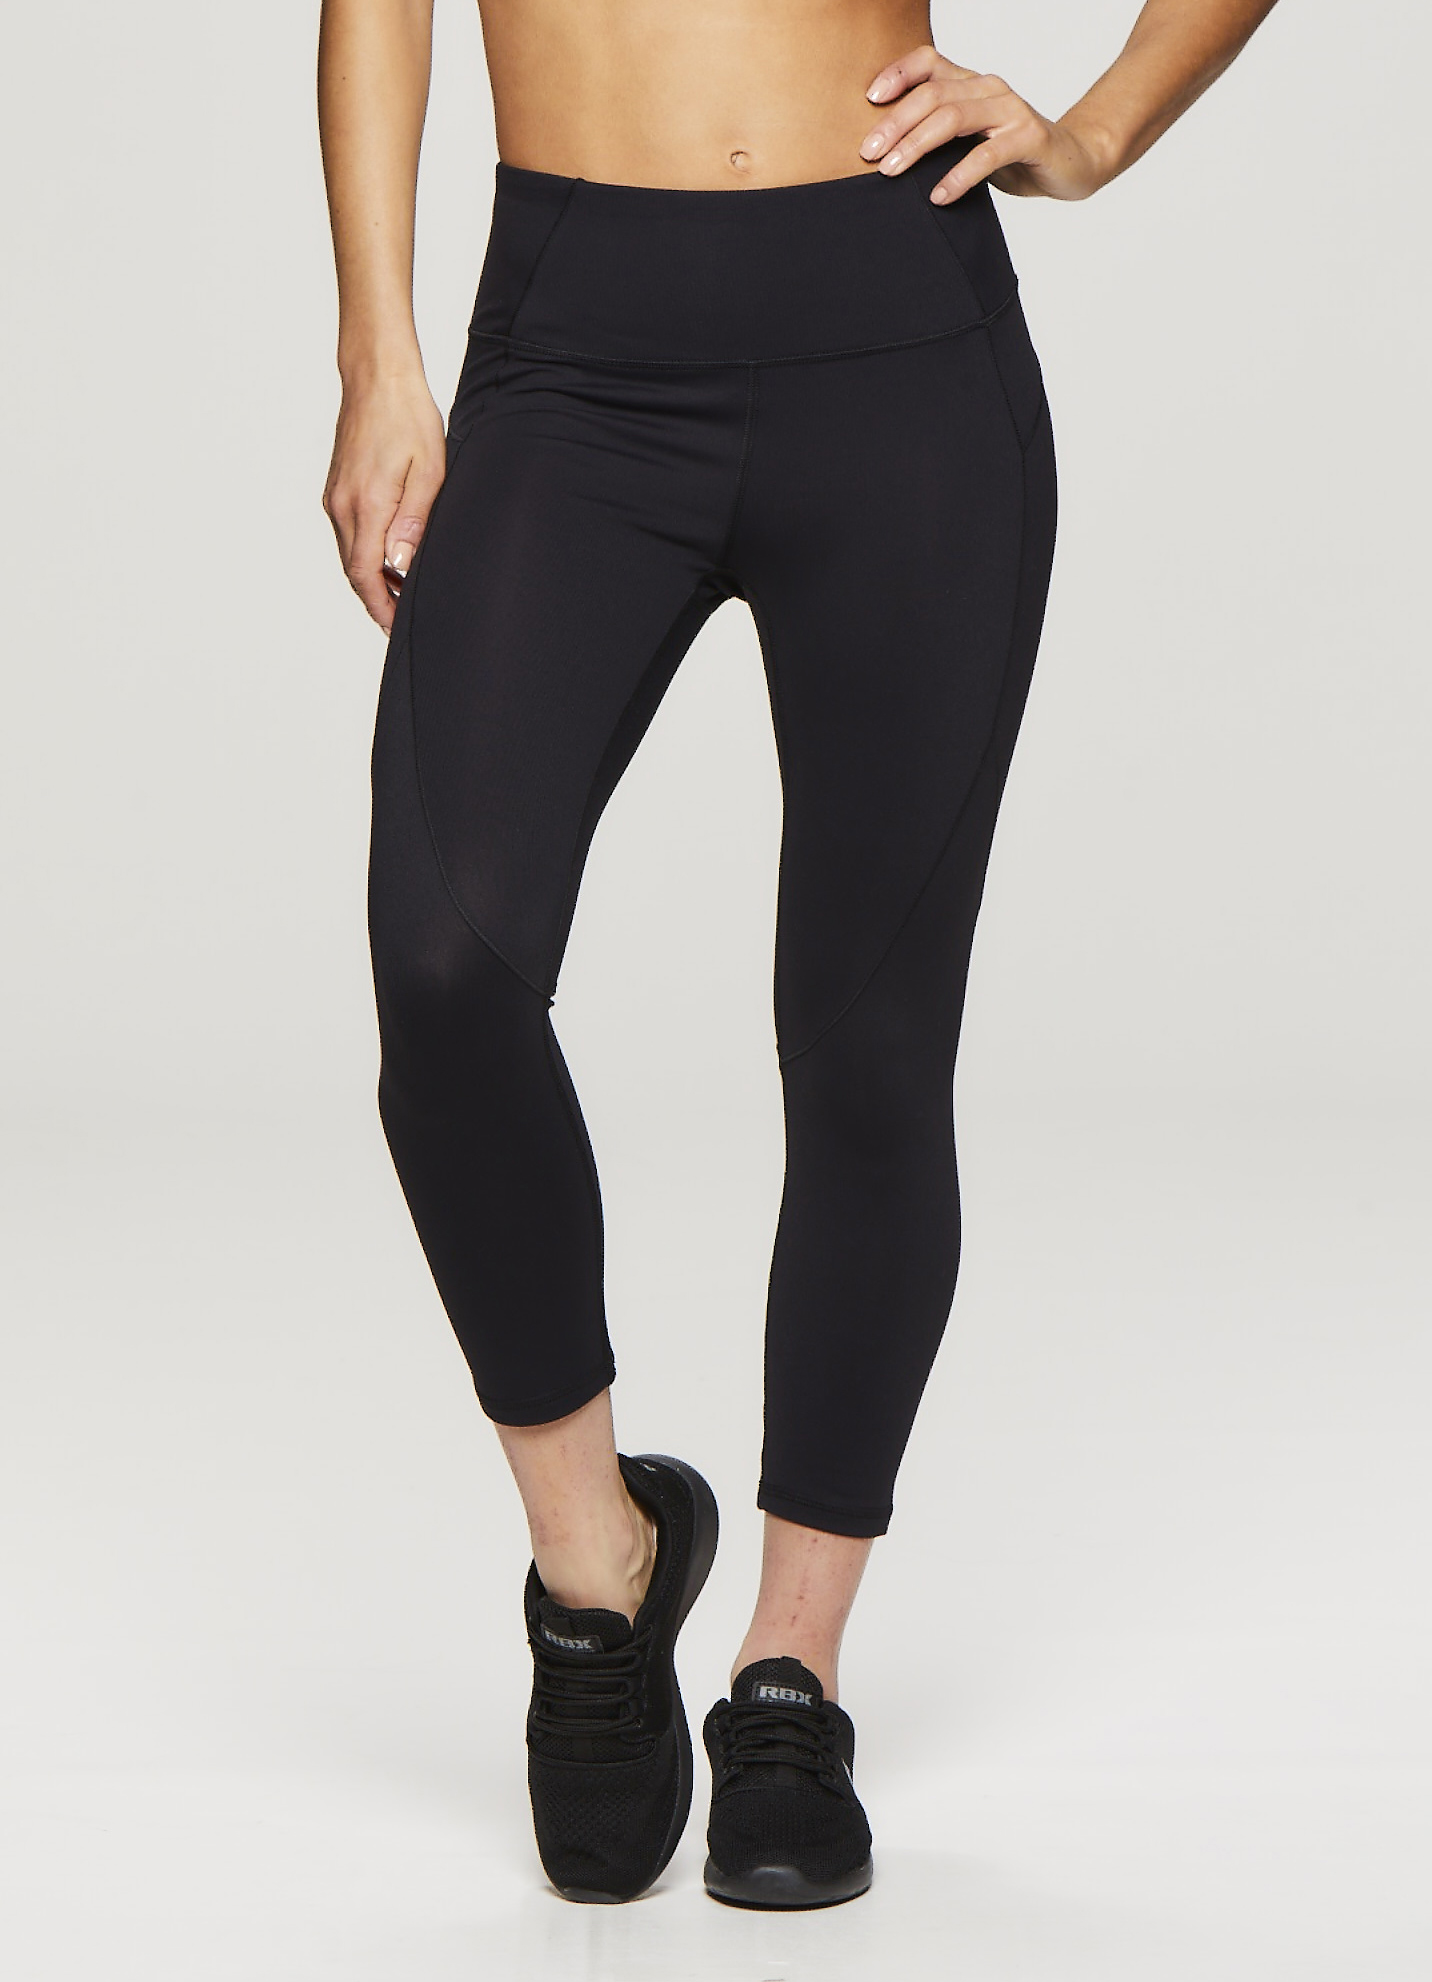 Women's Active Performance Capri Leggings